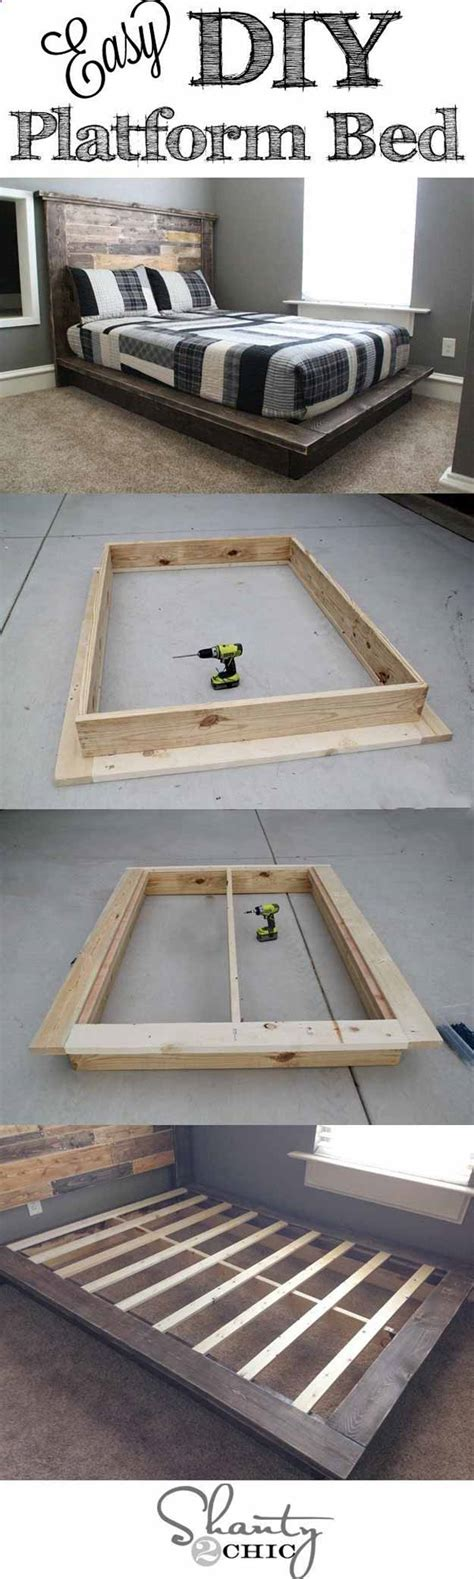 diy platform beds diy ready